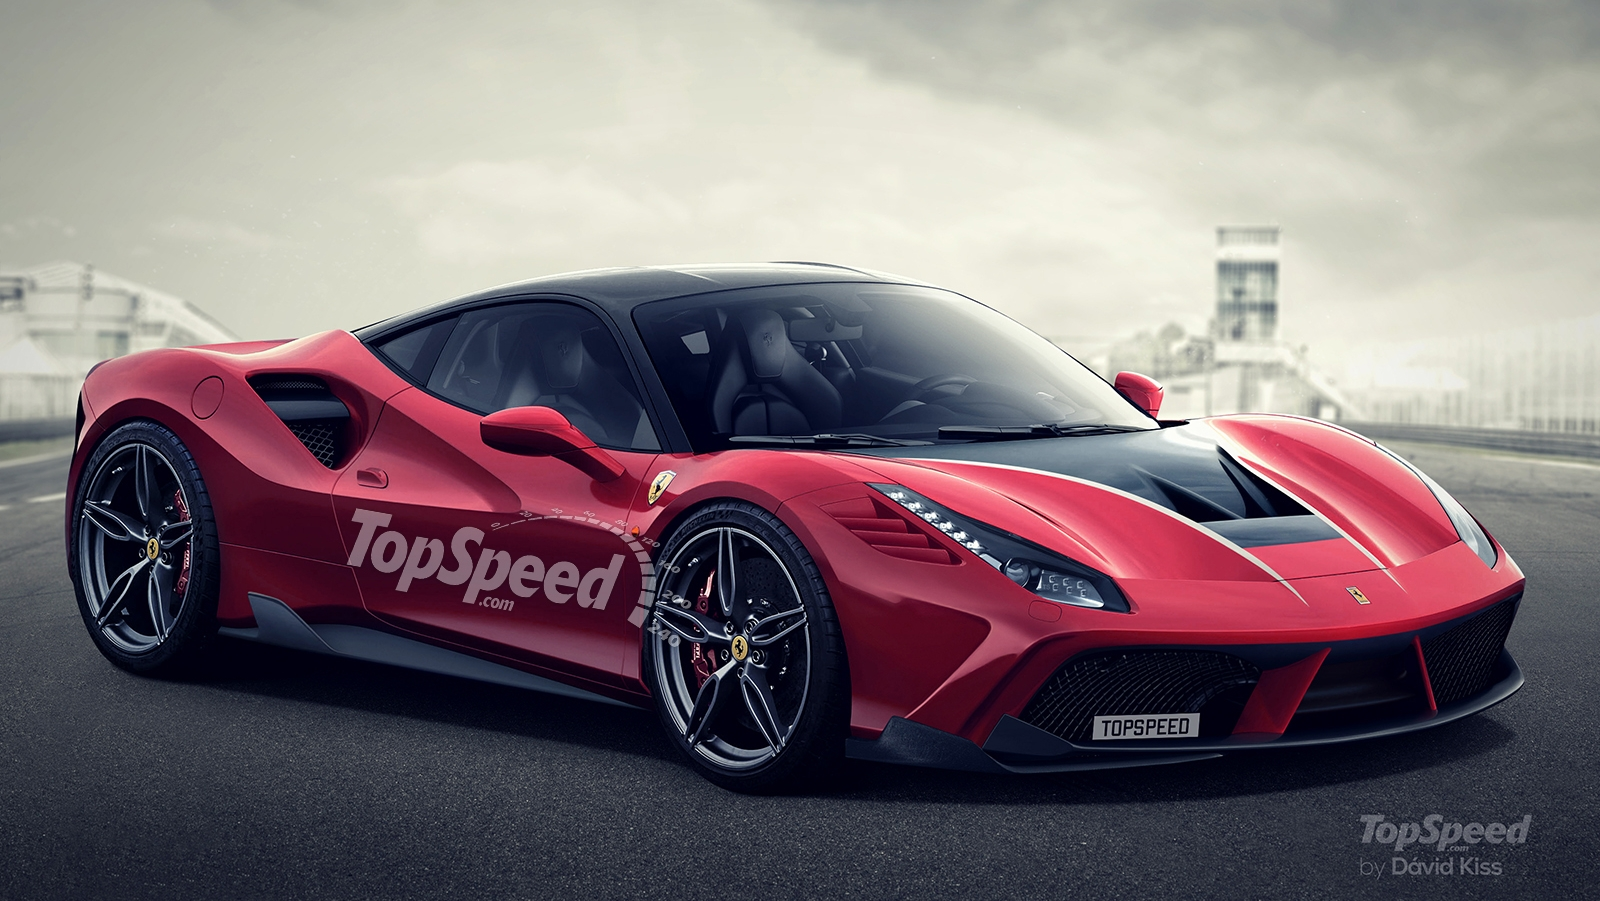 Leaked Specs Say The Ferrari 488 GTO Will Carry The Most